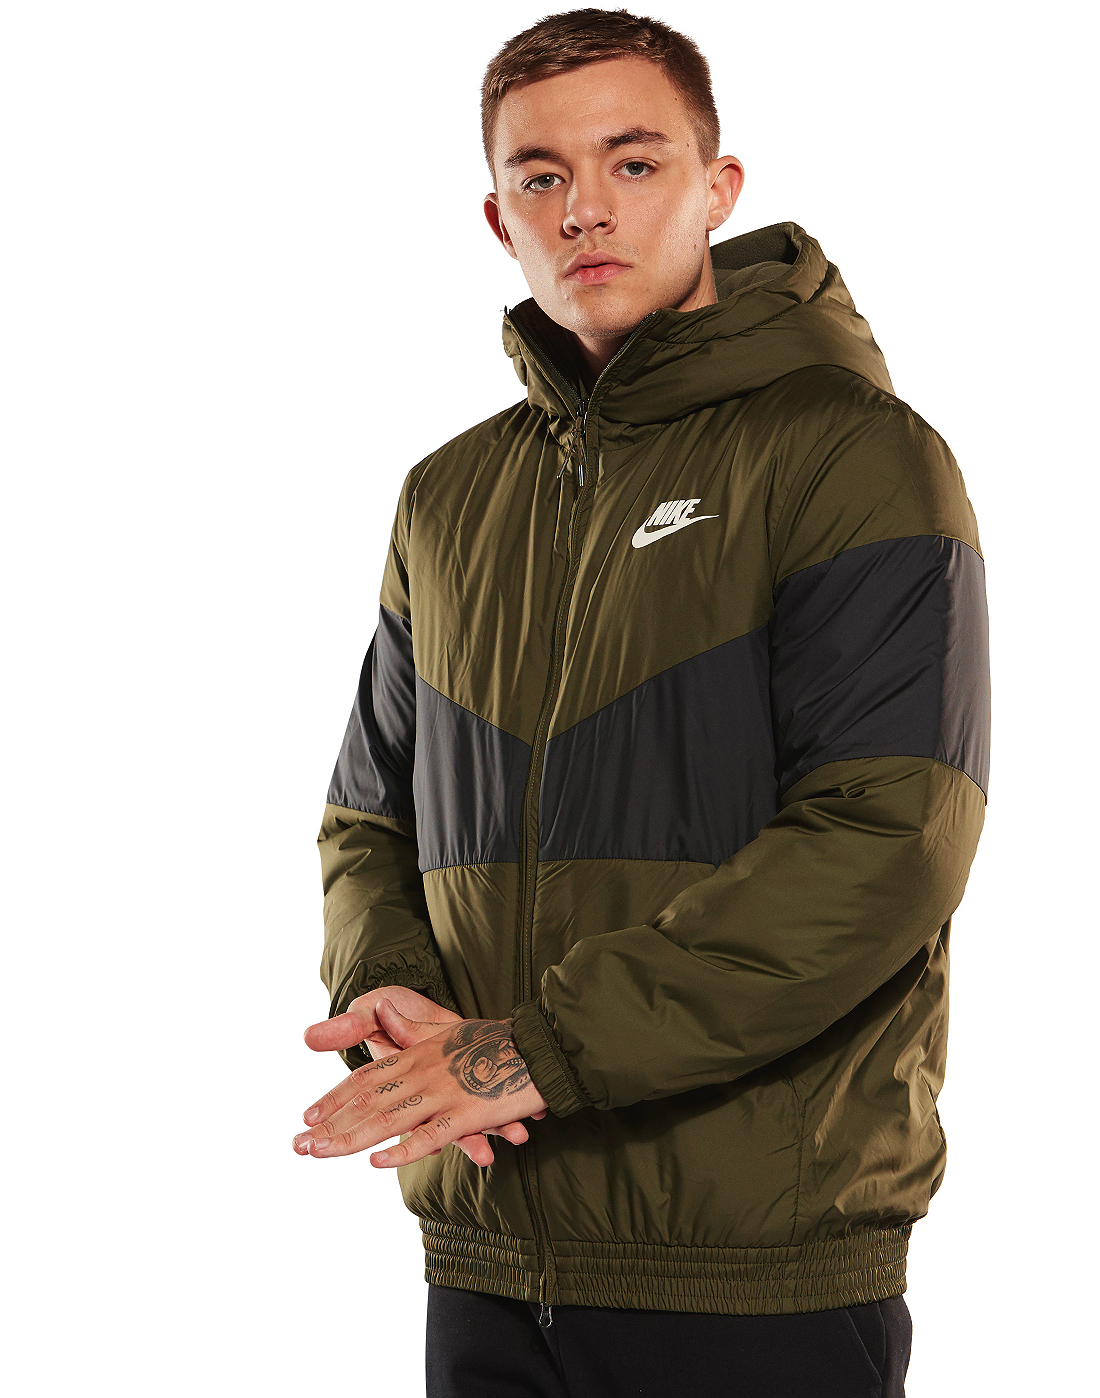 5017f402e Men's Green Nike Insulated Jacket | Life Style Sports